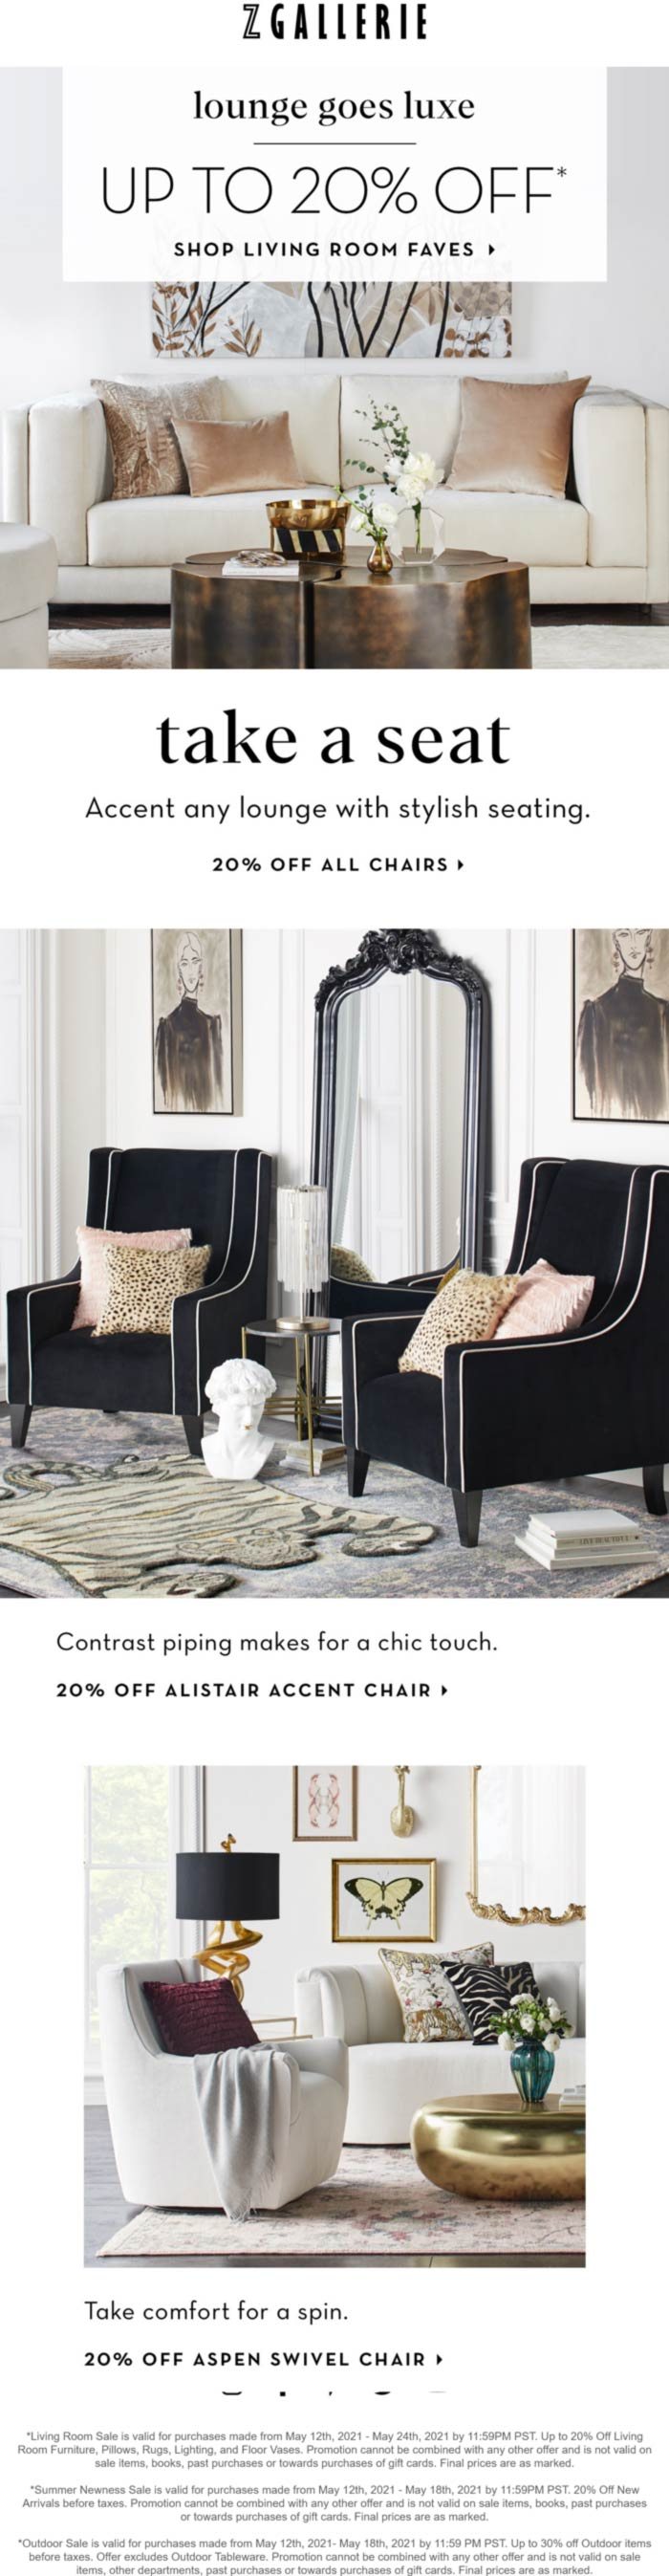 Z Gallerie stores Coupon  20% off all chairs at Z Gallerie furniture #zgallerie